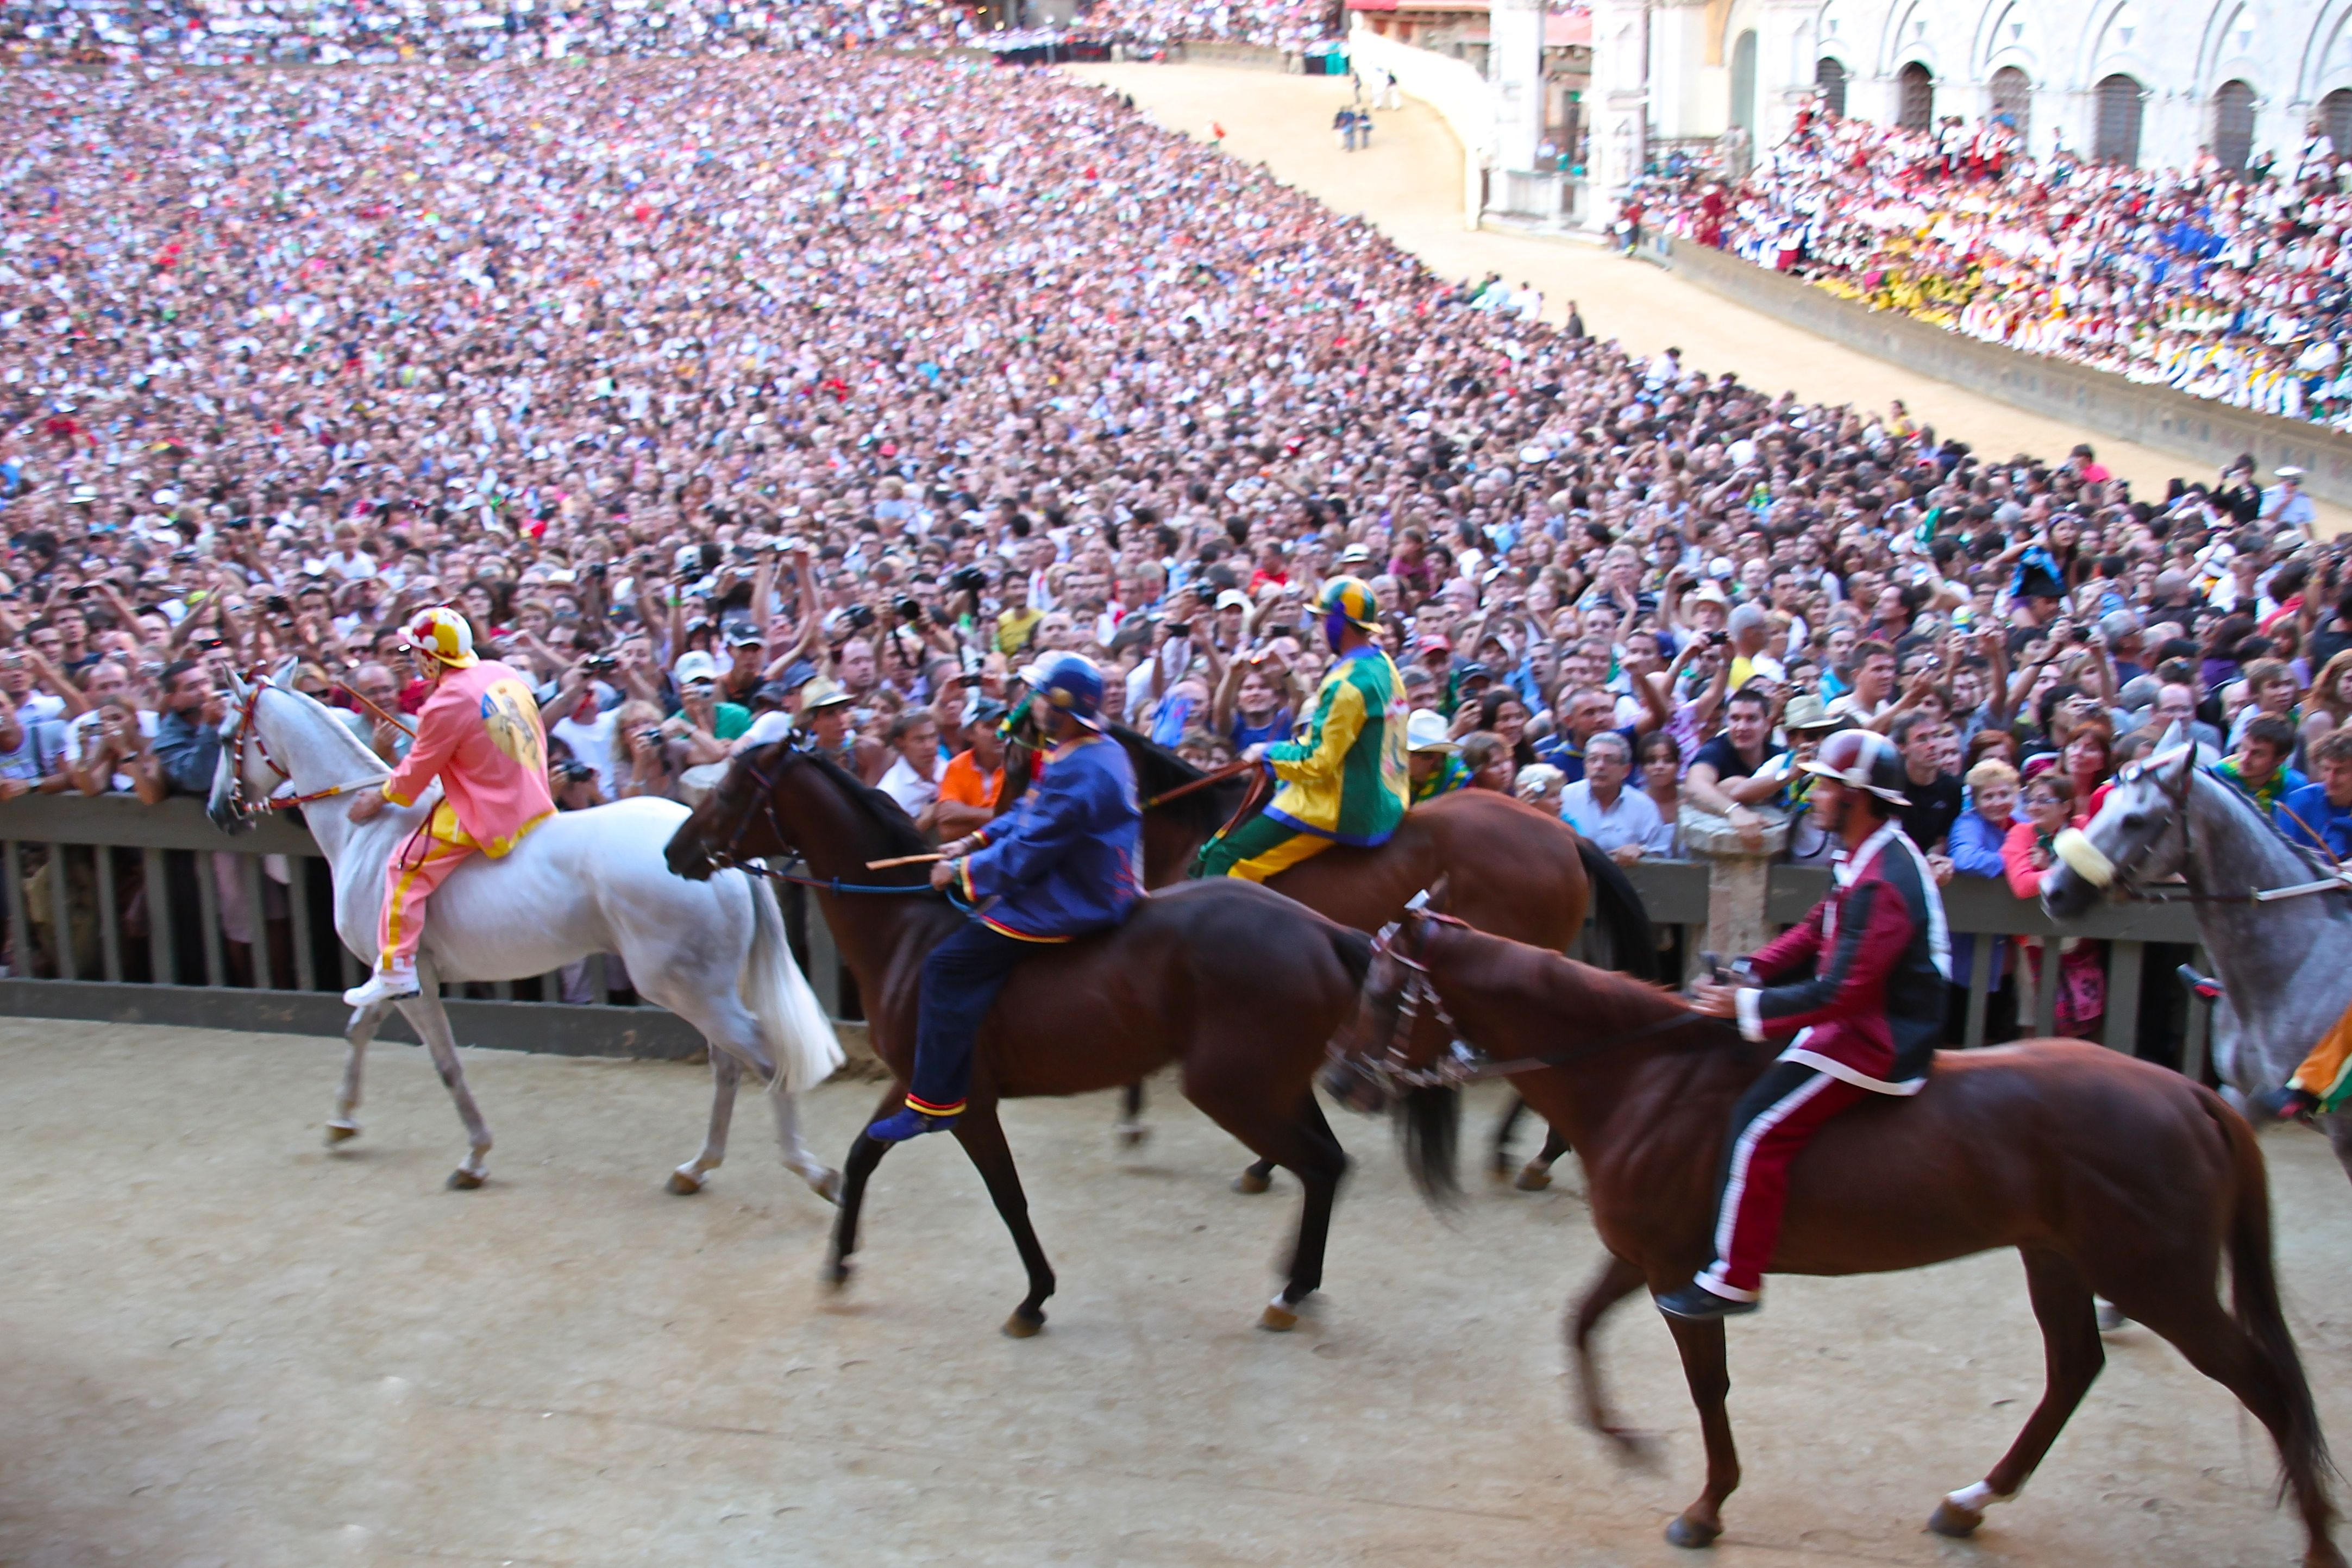 Palio racehorses and their jockeys enter the Piazza del Campo in Siena watched by over 40,000 spectators